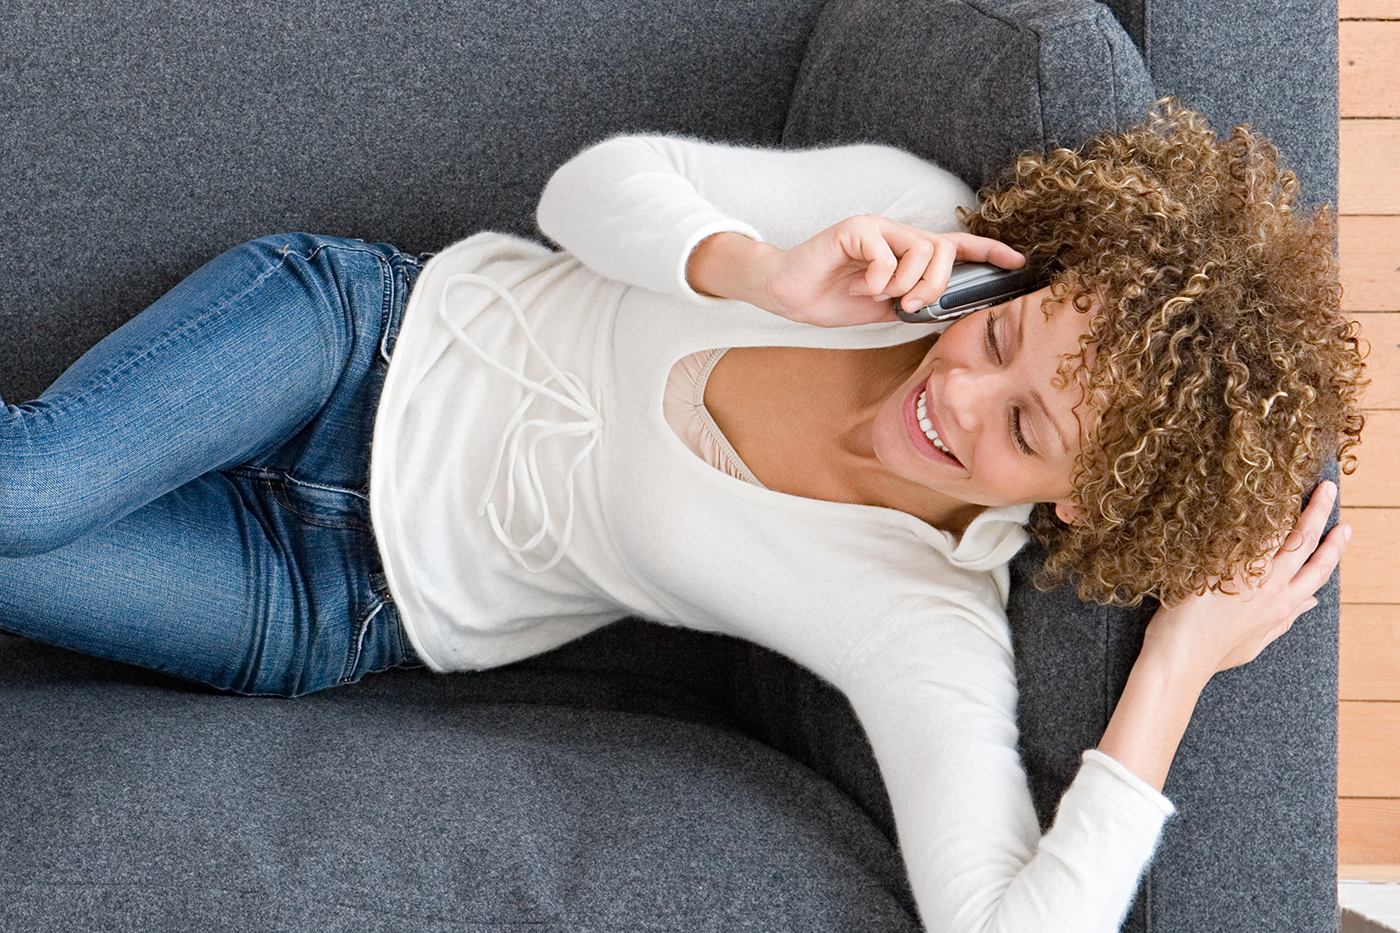 Woman lying on couch while talking on phone